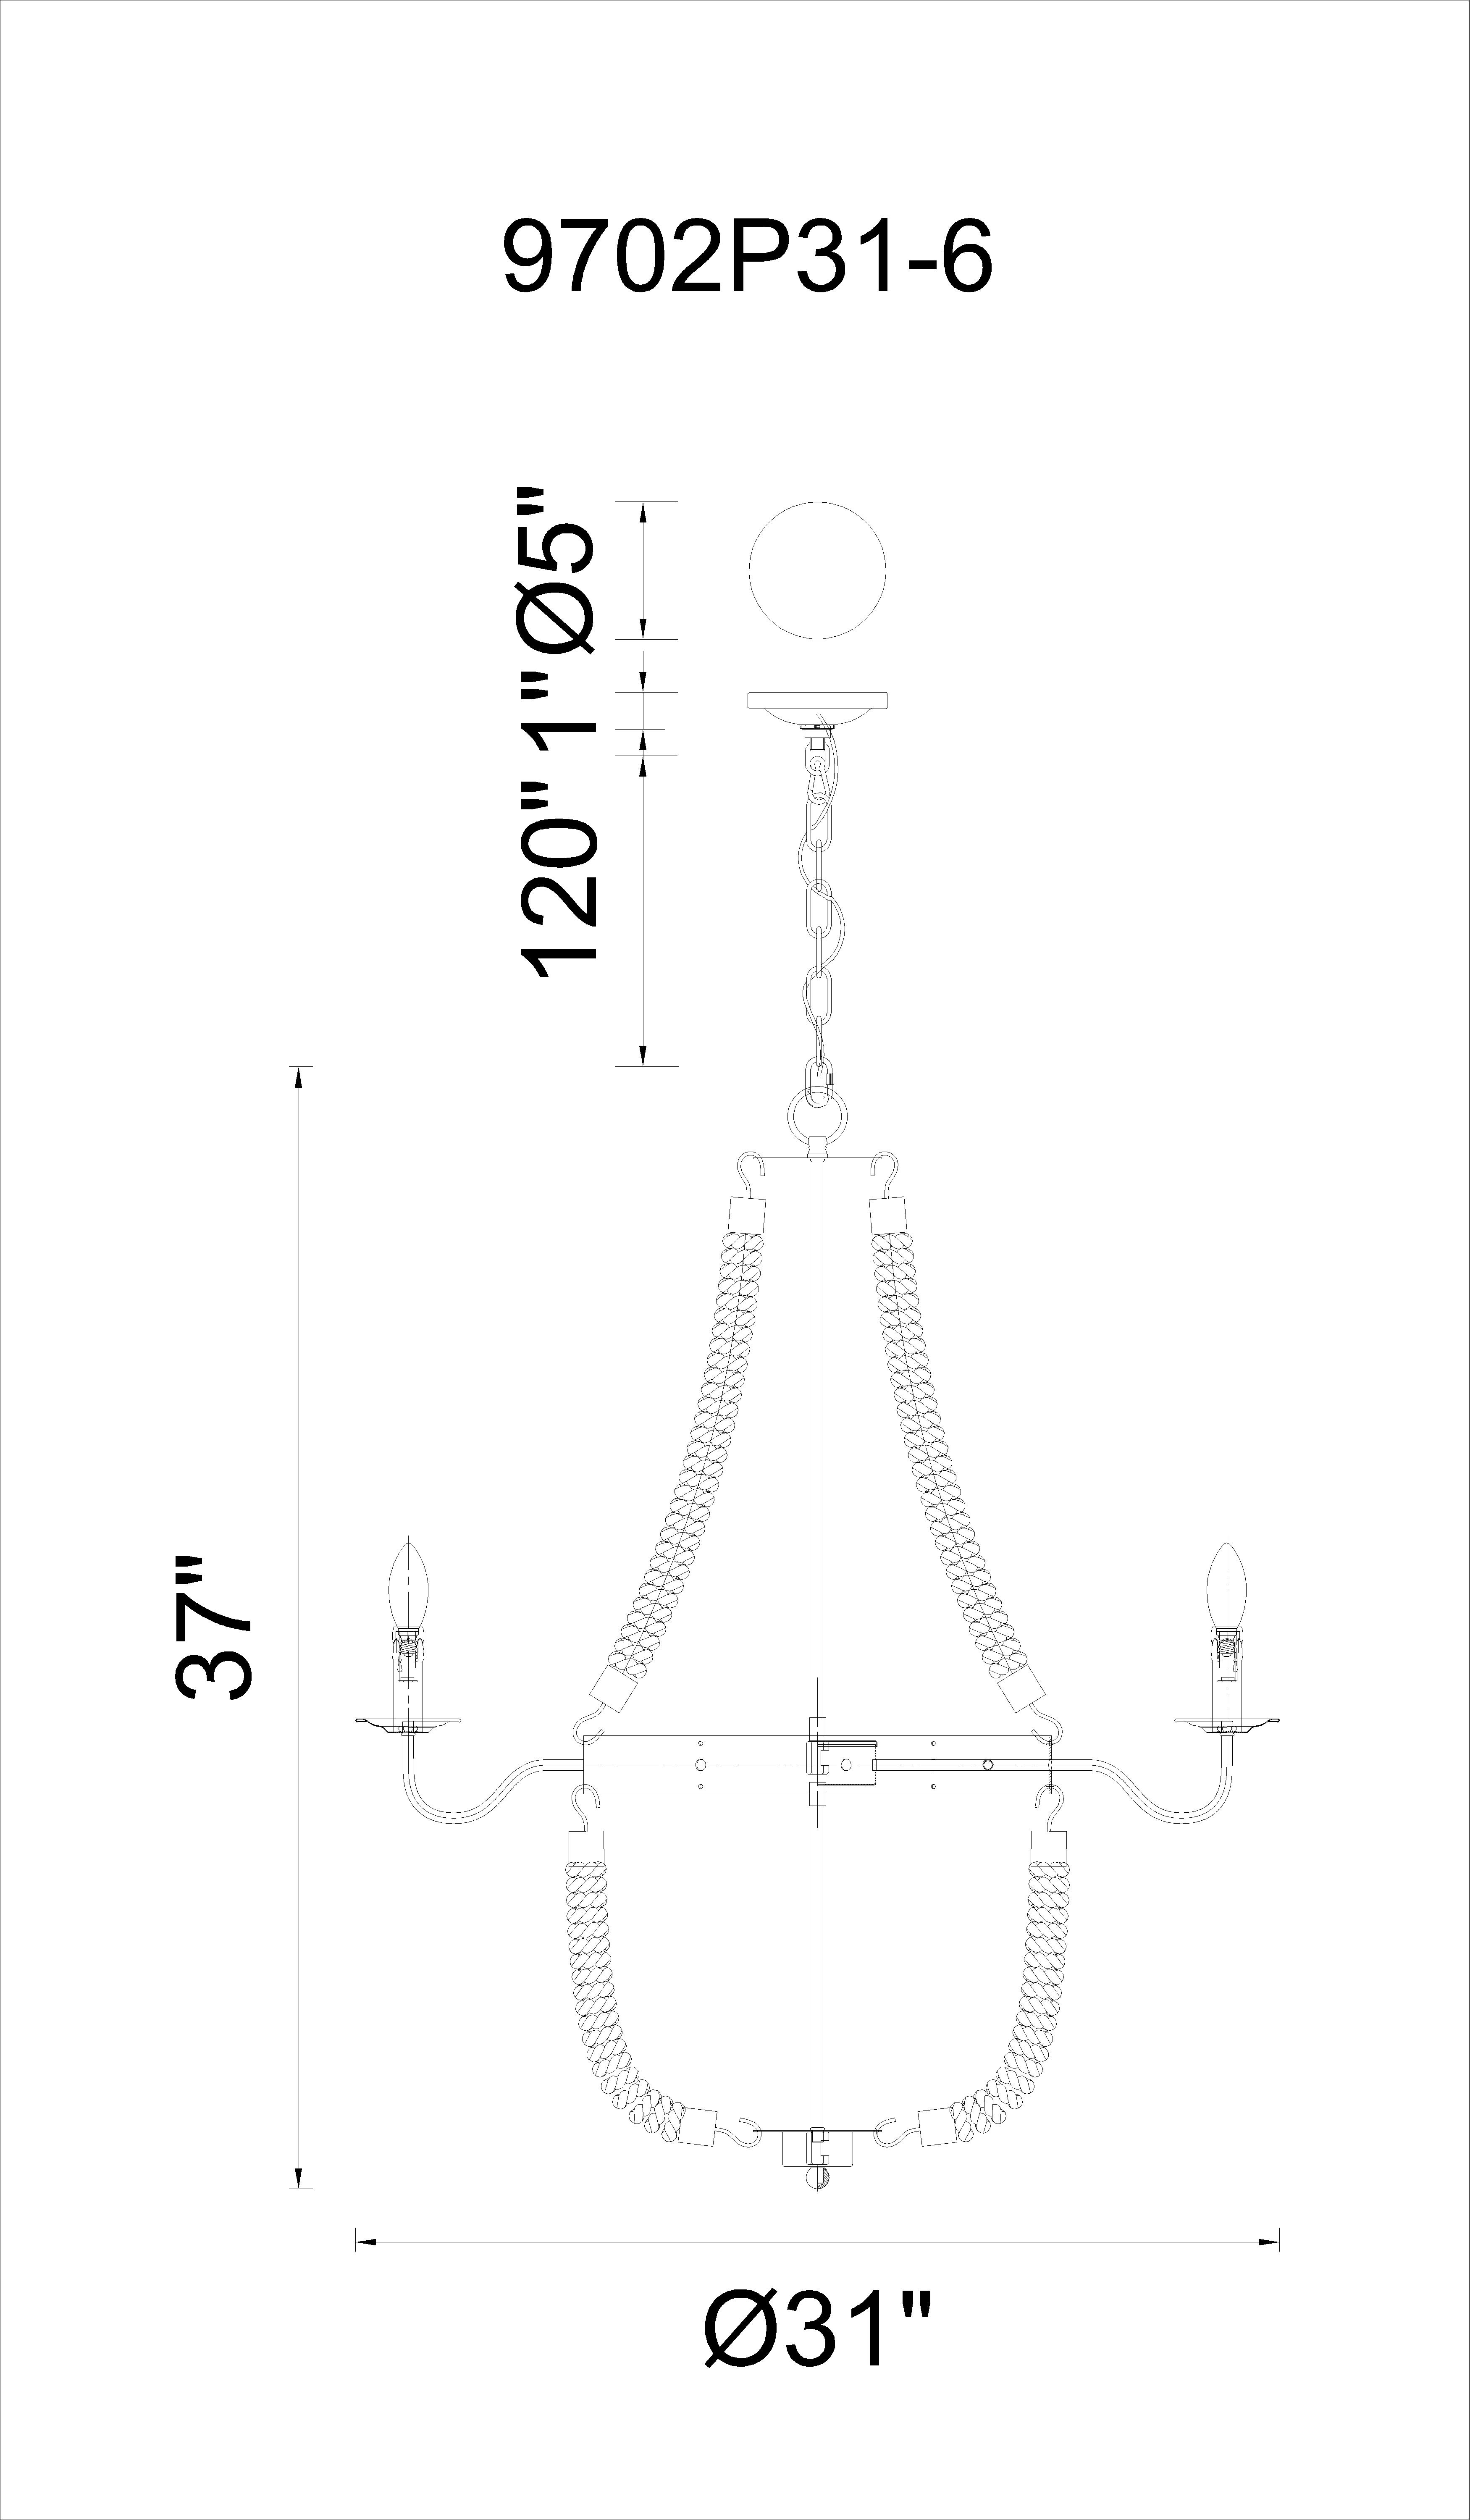 CWI Lighting Dharla 6 Light Up Chandelier With Rust Finish Model: 9702P31-6-130 Line Drawing